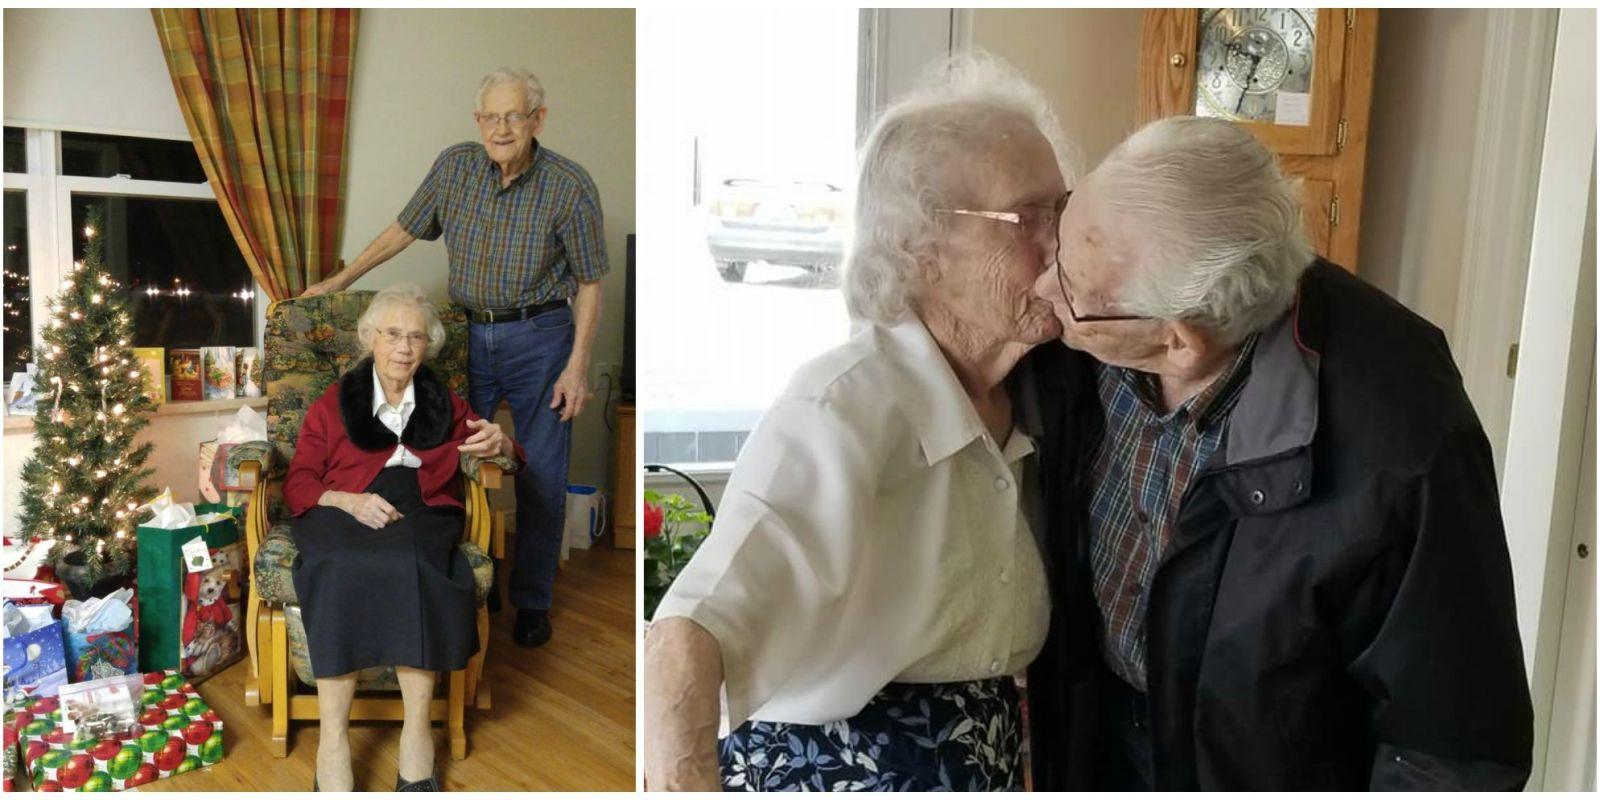 Husband With Dementia Is Separated From His Wife After 7